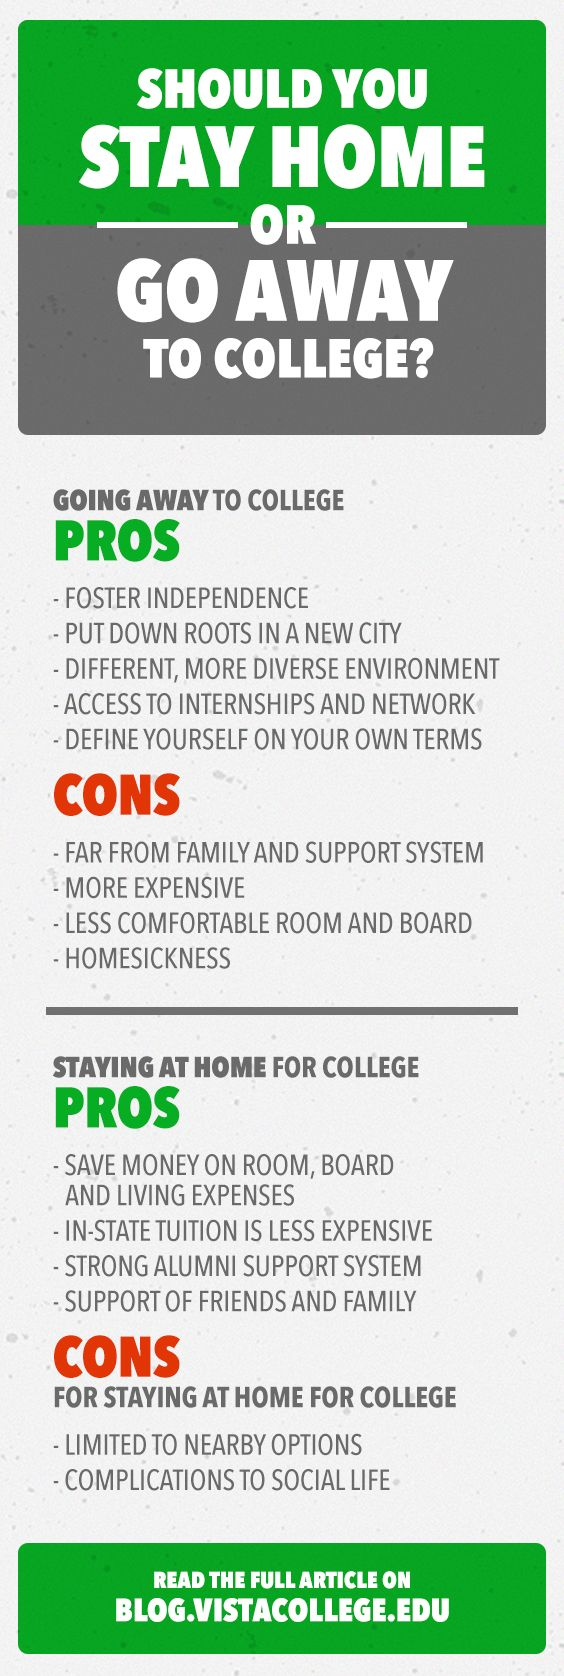 Should You Stay Home or Go Away to College?